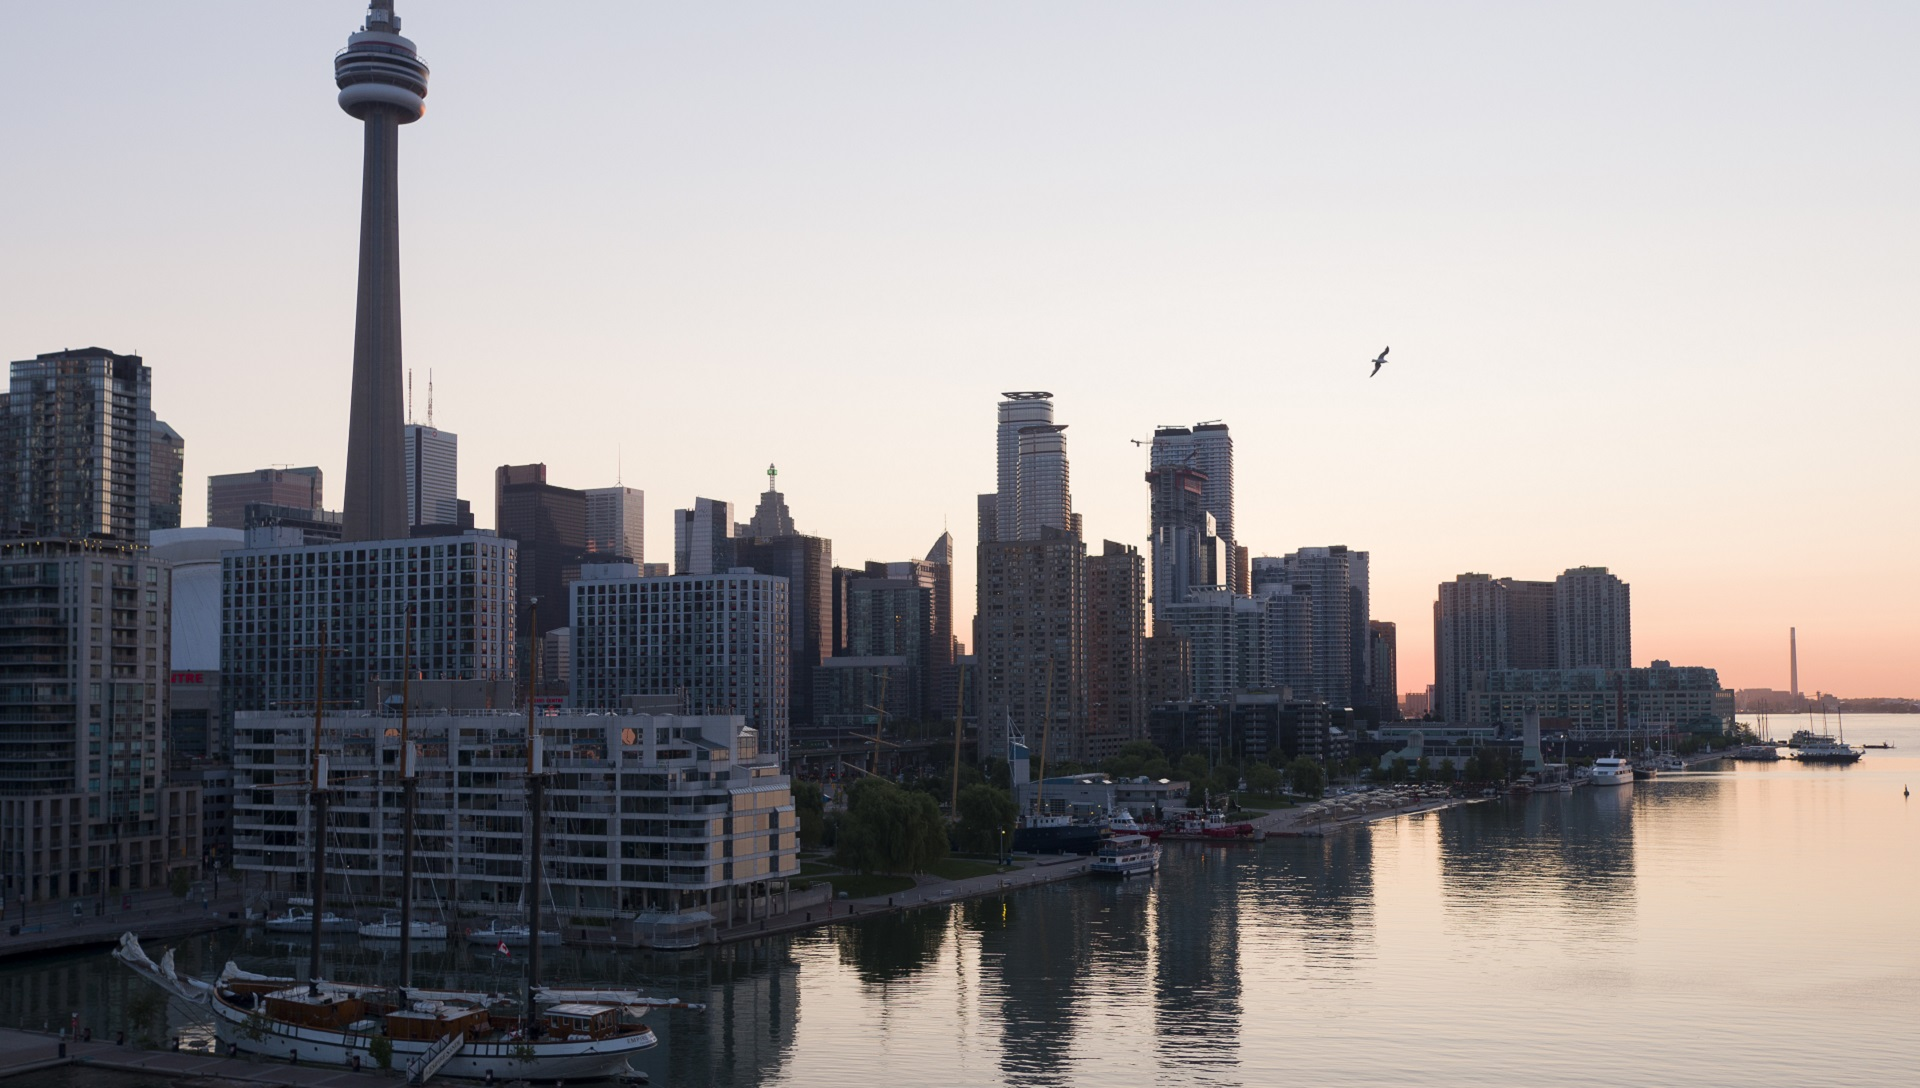 Toronto waterfront skyline at sunset